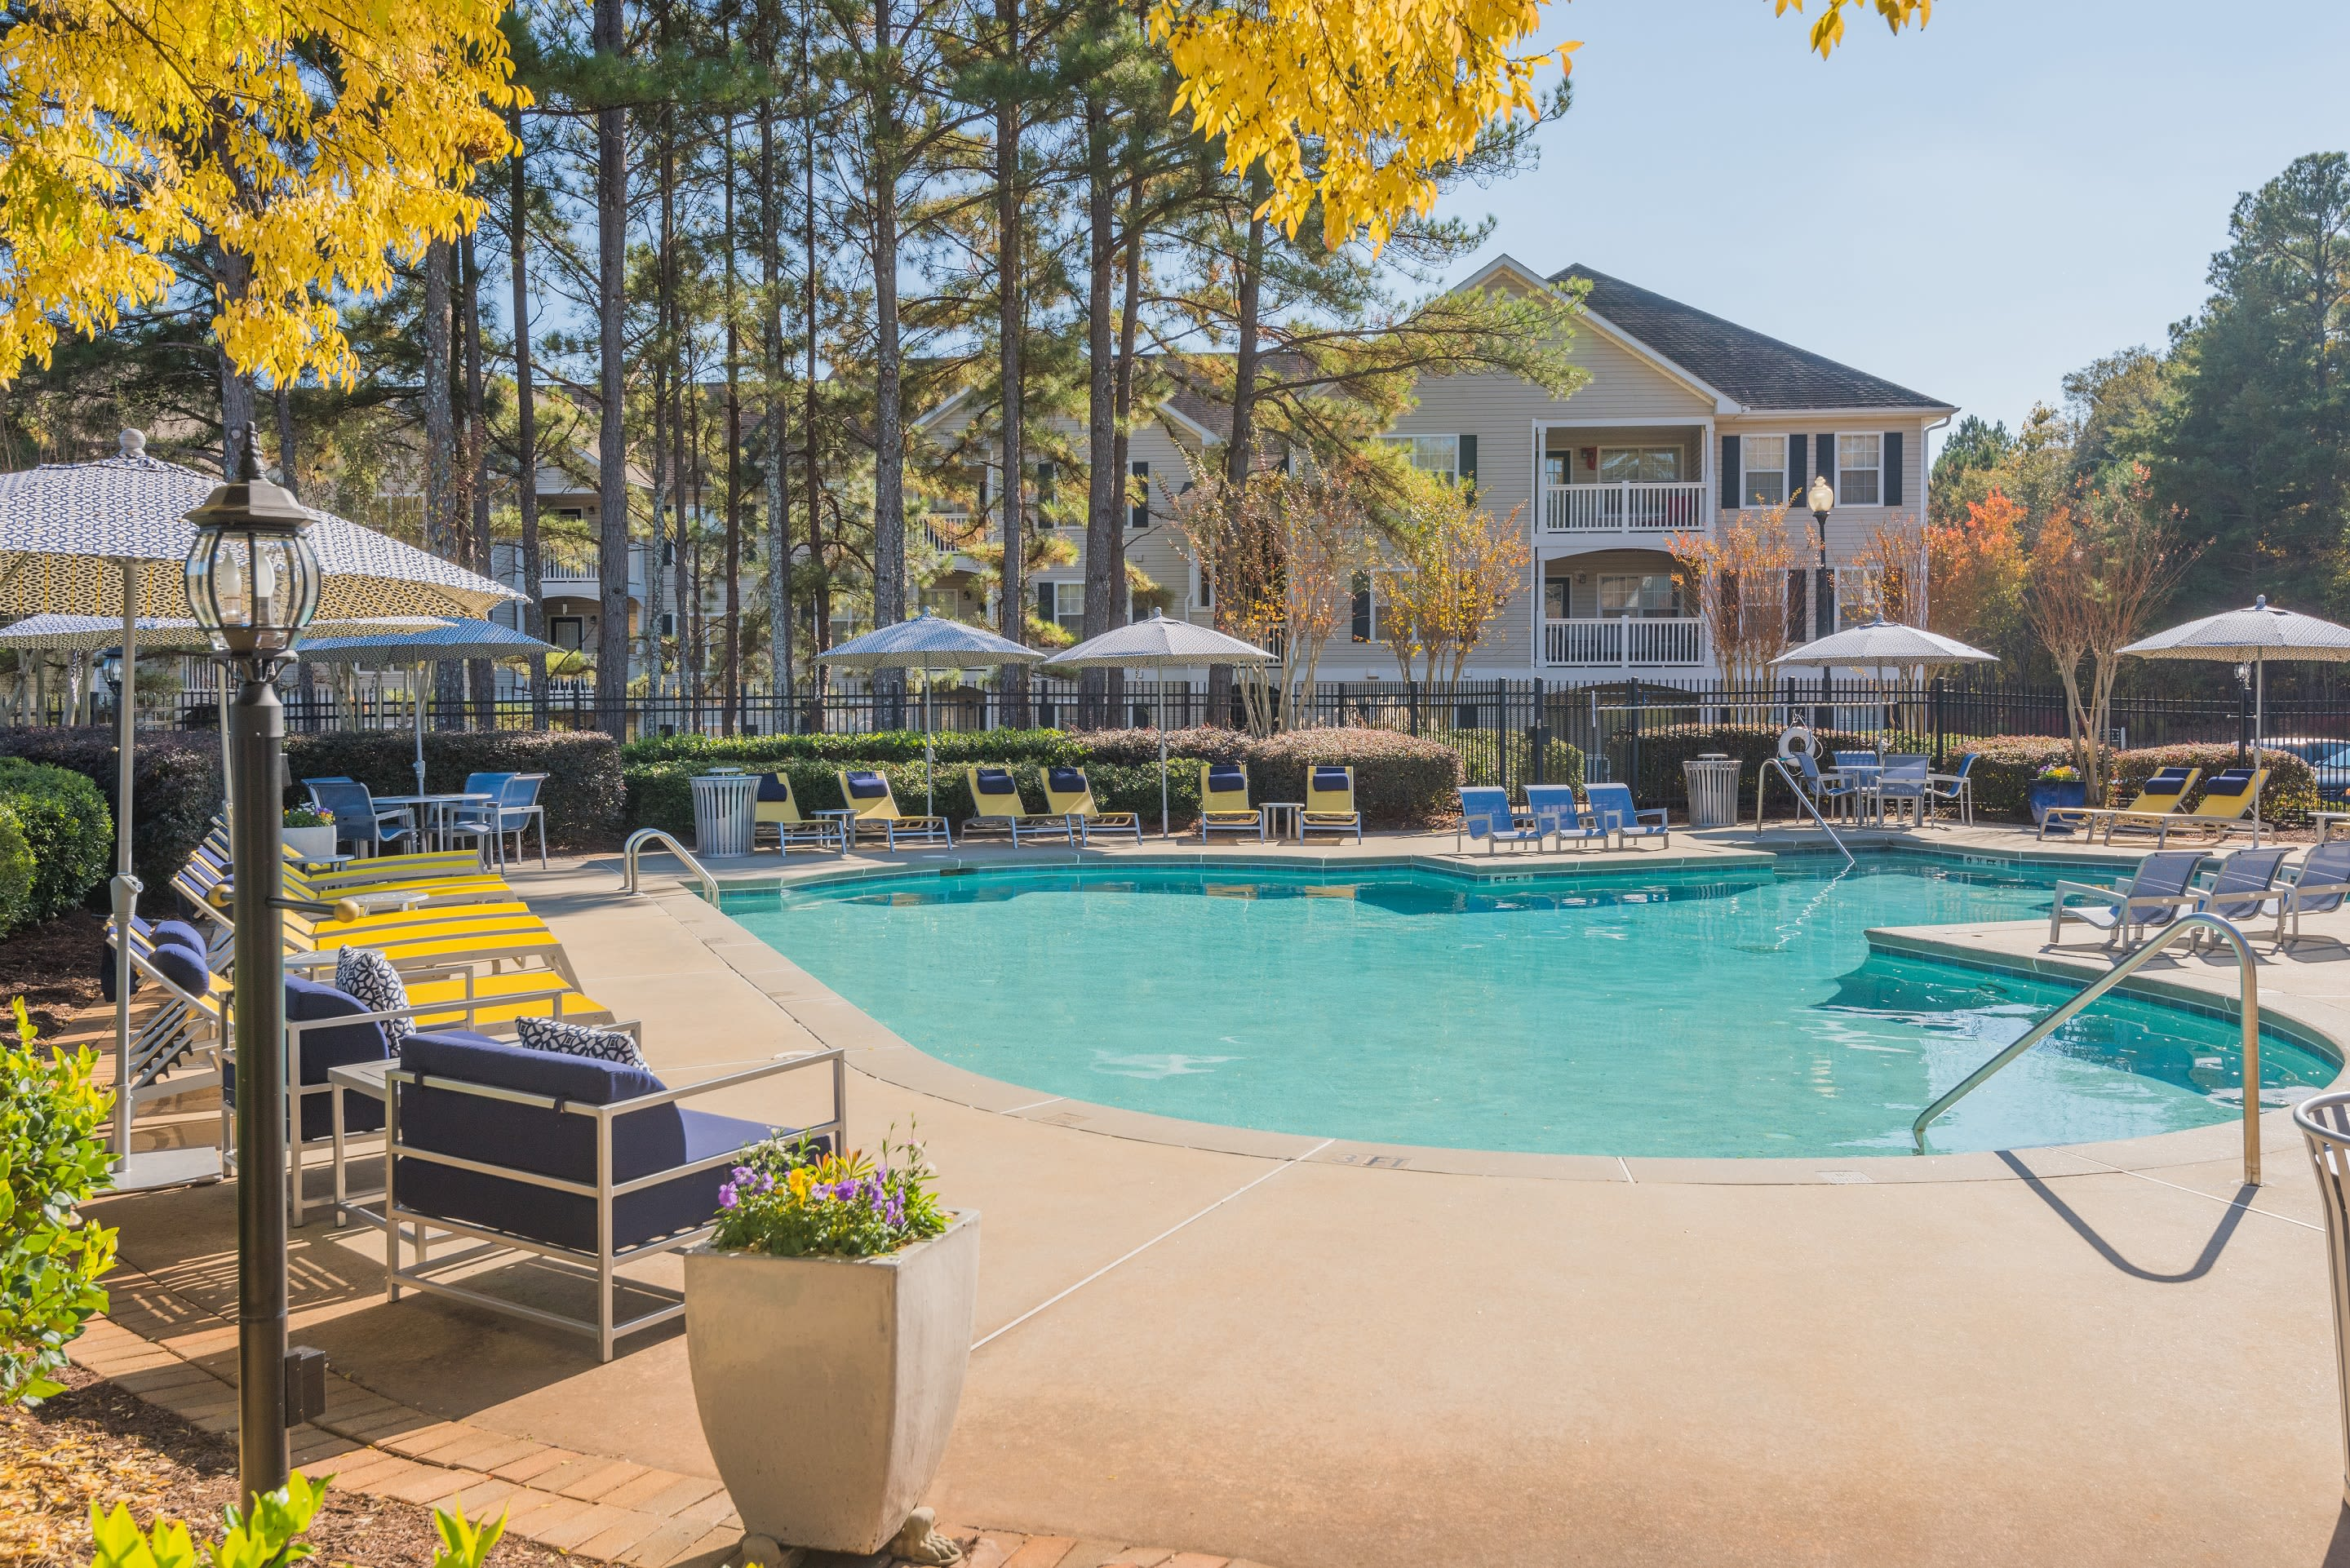 Resort style pool with lounge chairs at The Oxford in Conyers, Georgia